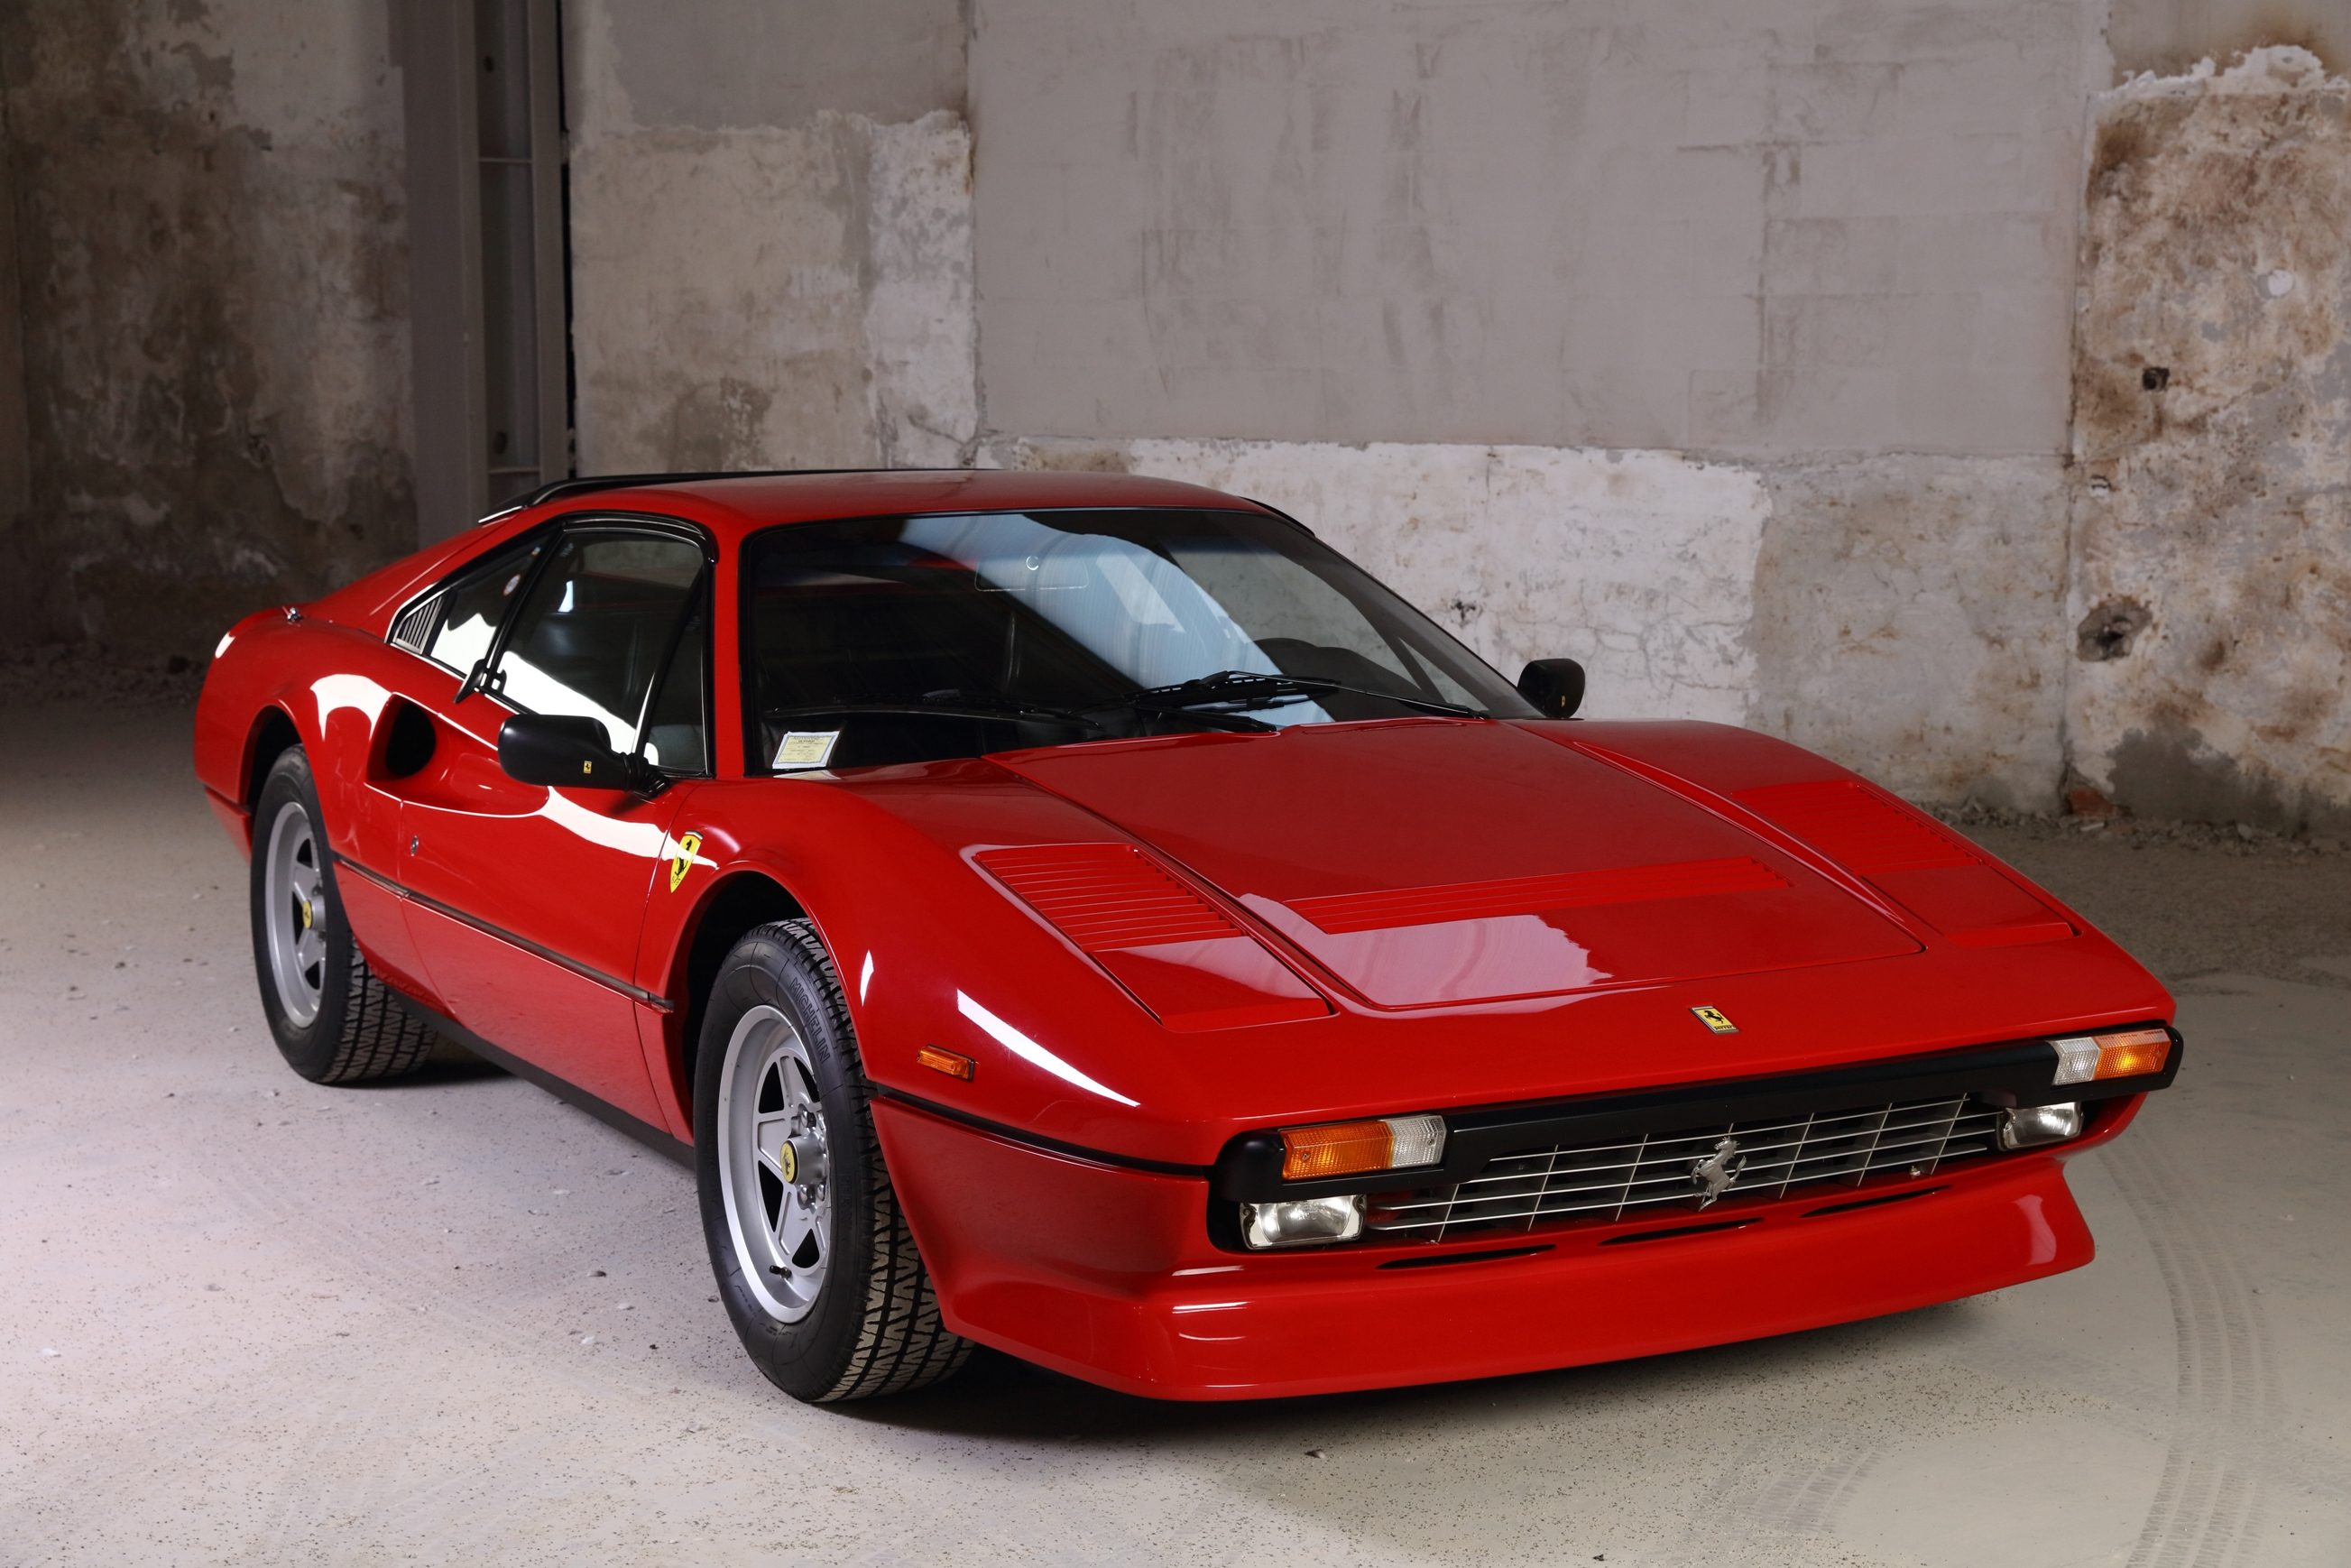 1985 ferrari 308 gtb quattrovalvole classic driver market. Black Bedroom Furniture Sets. Home Design Ideas